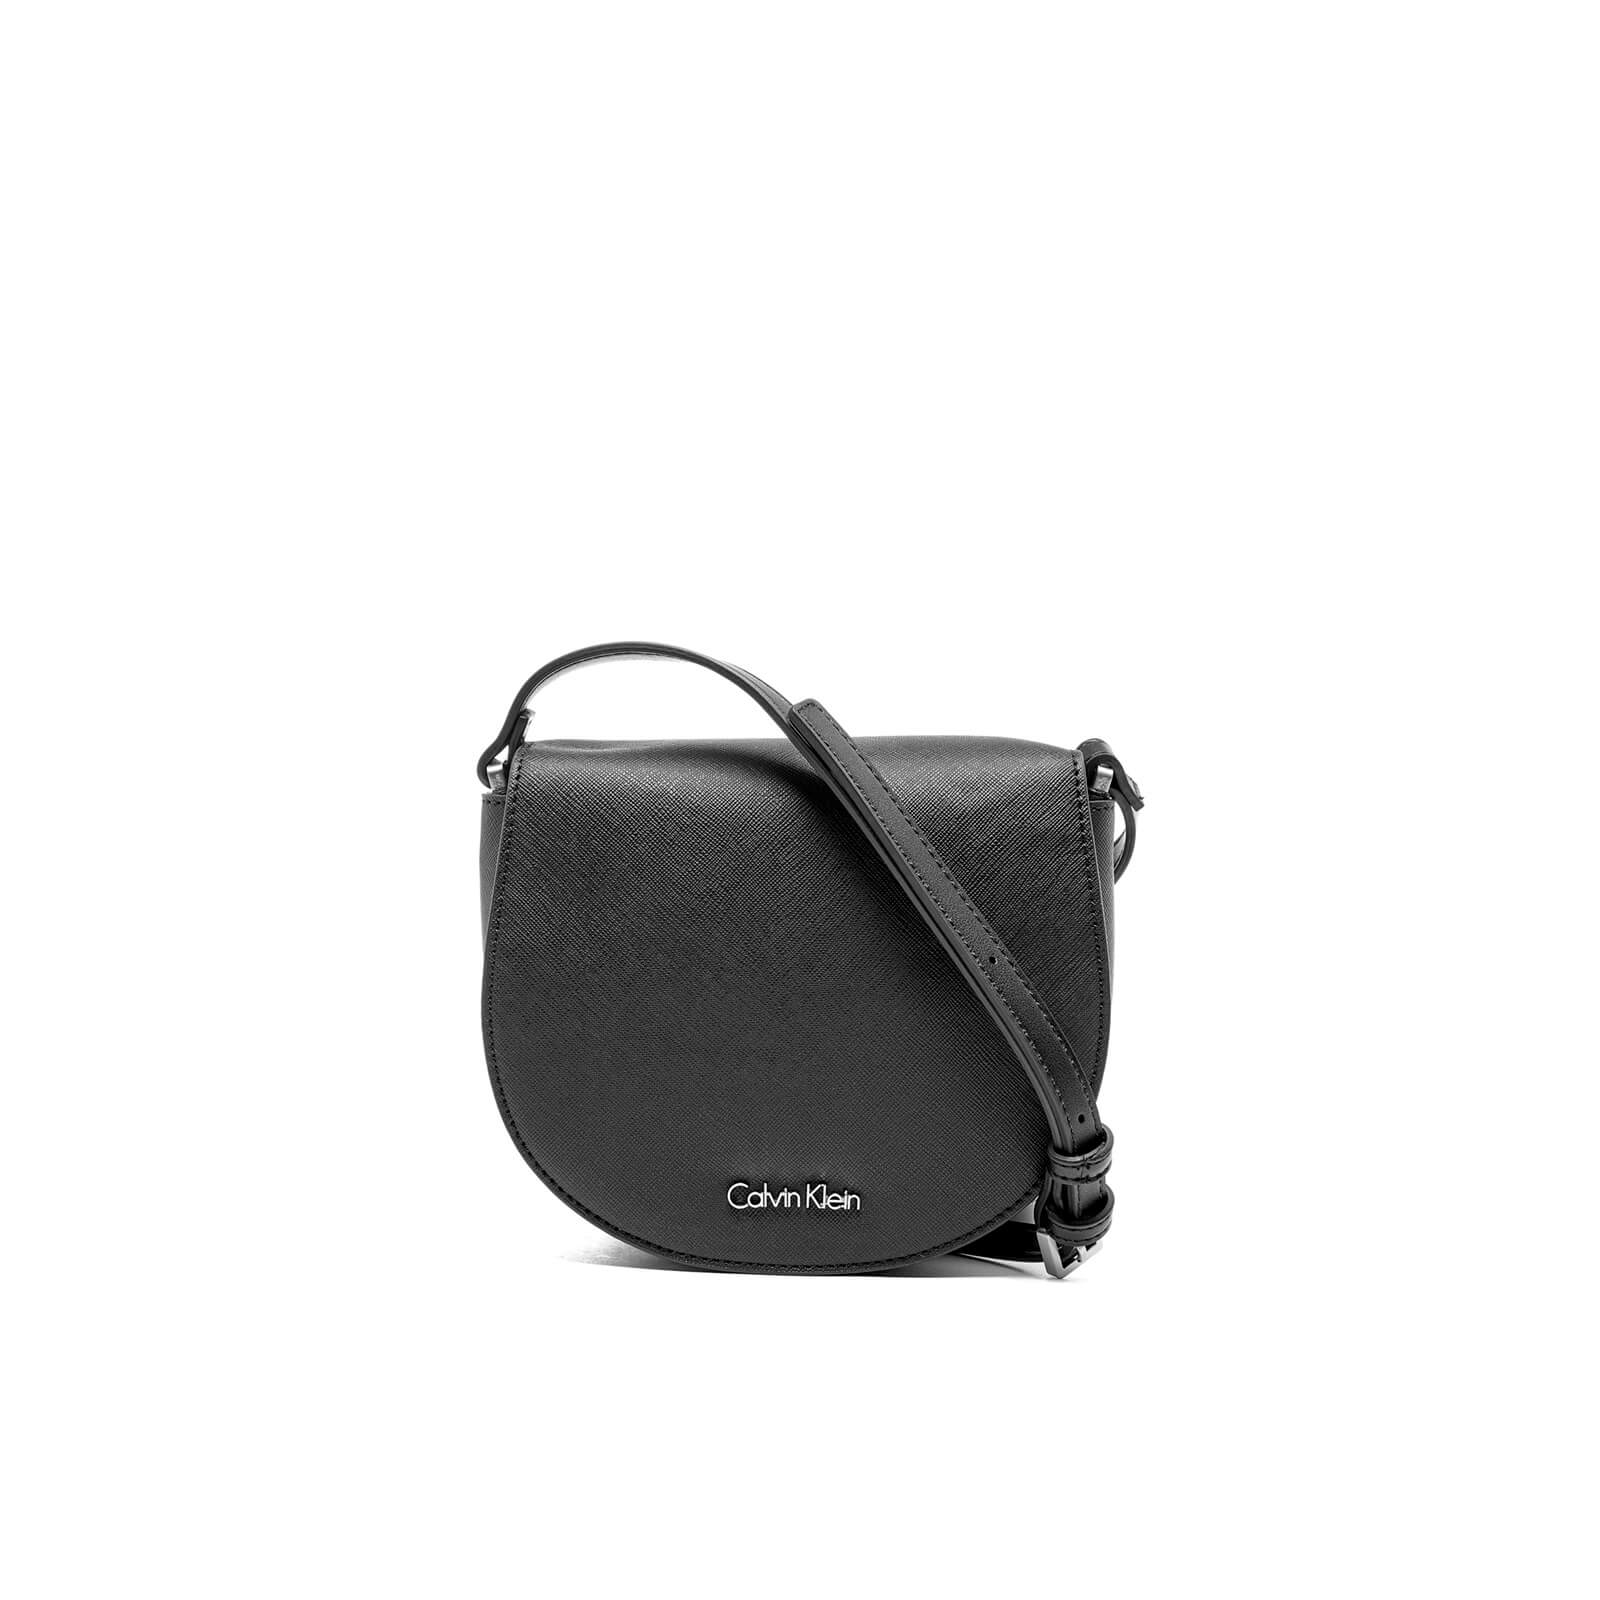 1e4b034f28 Calvin Klein Women's Marissa Saddle Bag - Black Womens Accessories |  TheHut.com